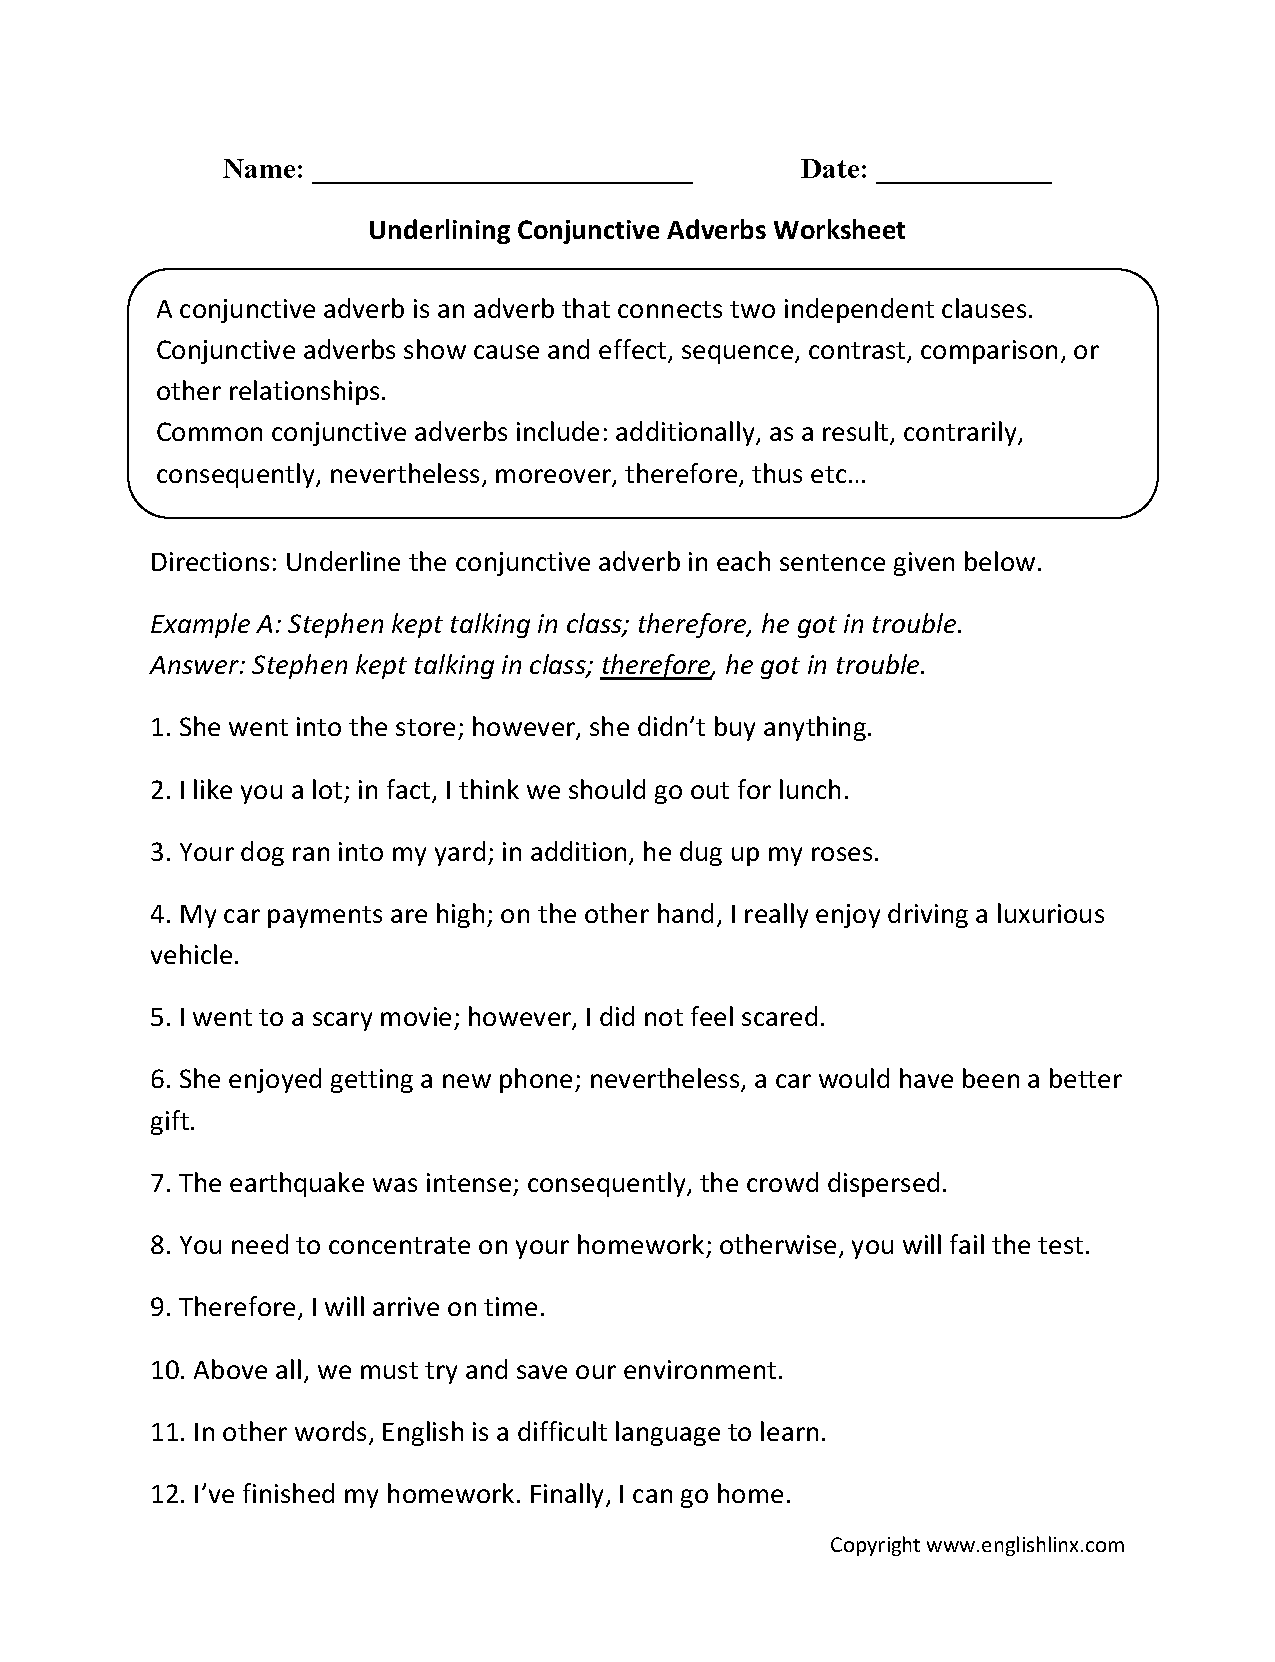 Proatmealus  Remarkable Englishlinxcom  Conjunctions Worksheets With Gorgeous Worksheet With Agreeable Building Self Esteem In Teenagers Worksheets Also Solving Percent Problems Worksheets In Addition Long A Worksheets For Second Grade And Finding Gcf And Lcm Worksheets As Well As Music Worksheets Ks Additionally Money Subtraction Worksheet From Englishlinxcom With Proatmealus  Gorgeous Englishlinxcom  Conjunctions Worksheets With Agreeable Worksheet And Remarkable Building Self Esteem In Teenagers Worksheets Also Solving Percent Problems Worksheets In Addition Long A Worksheets For Second Grade From Englishlinxcom